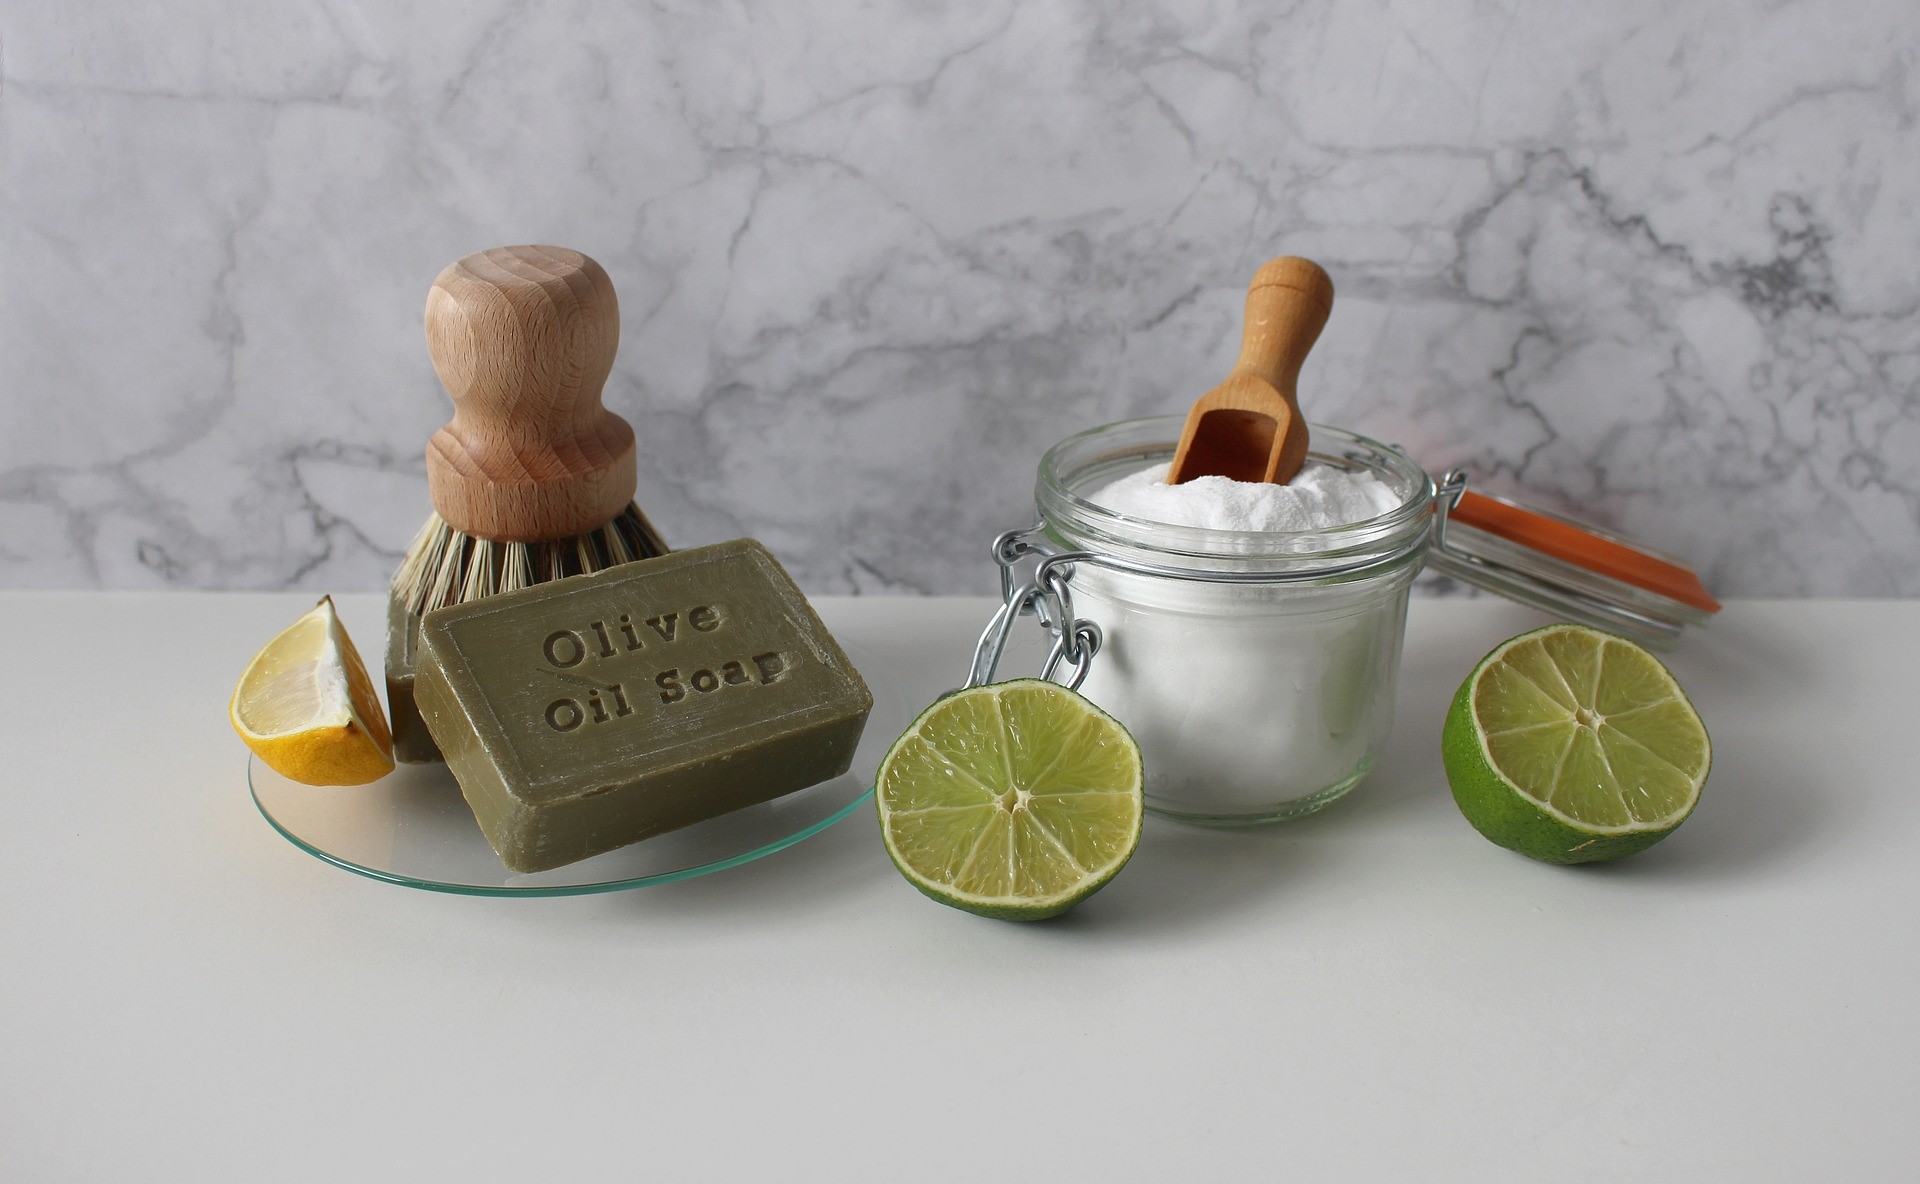 Marble Worktops Are Easy and Cheap to Clean with These Tips